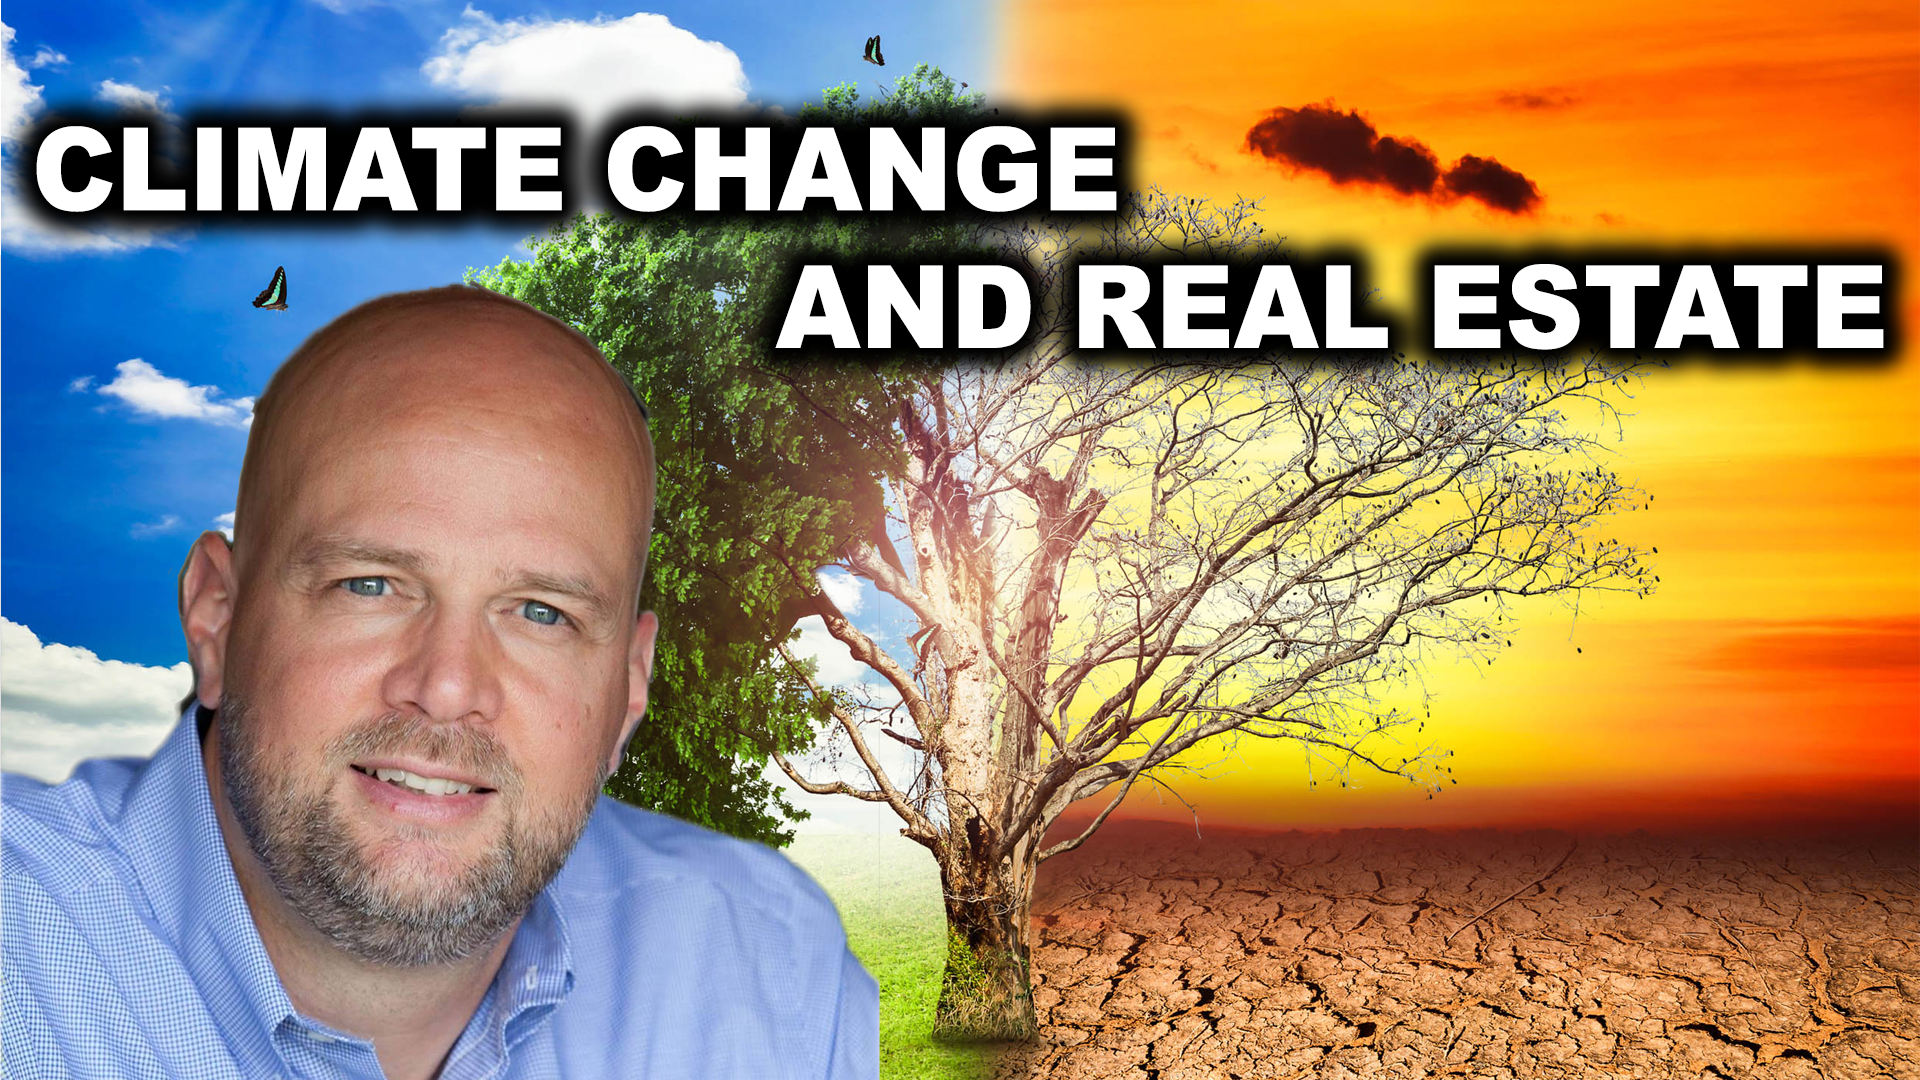 Climate Change and its Effects on Real Estate